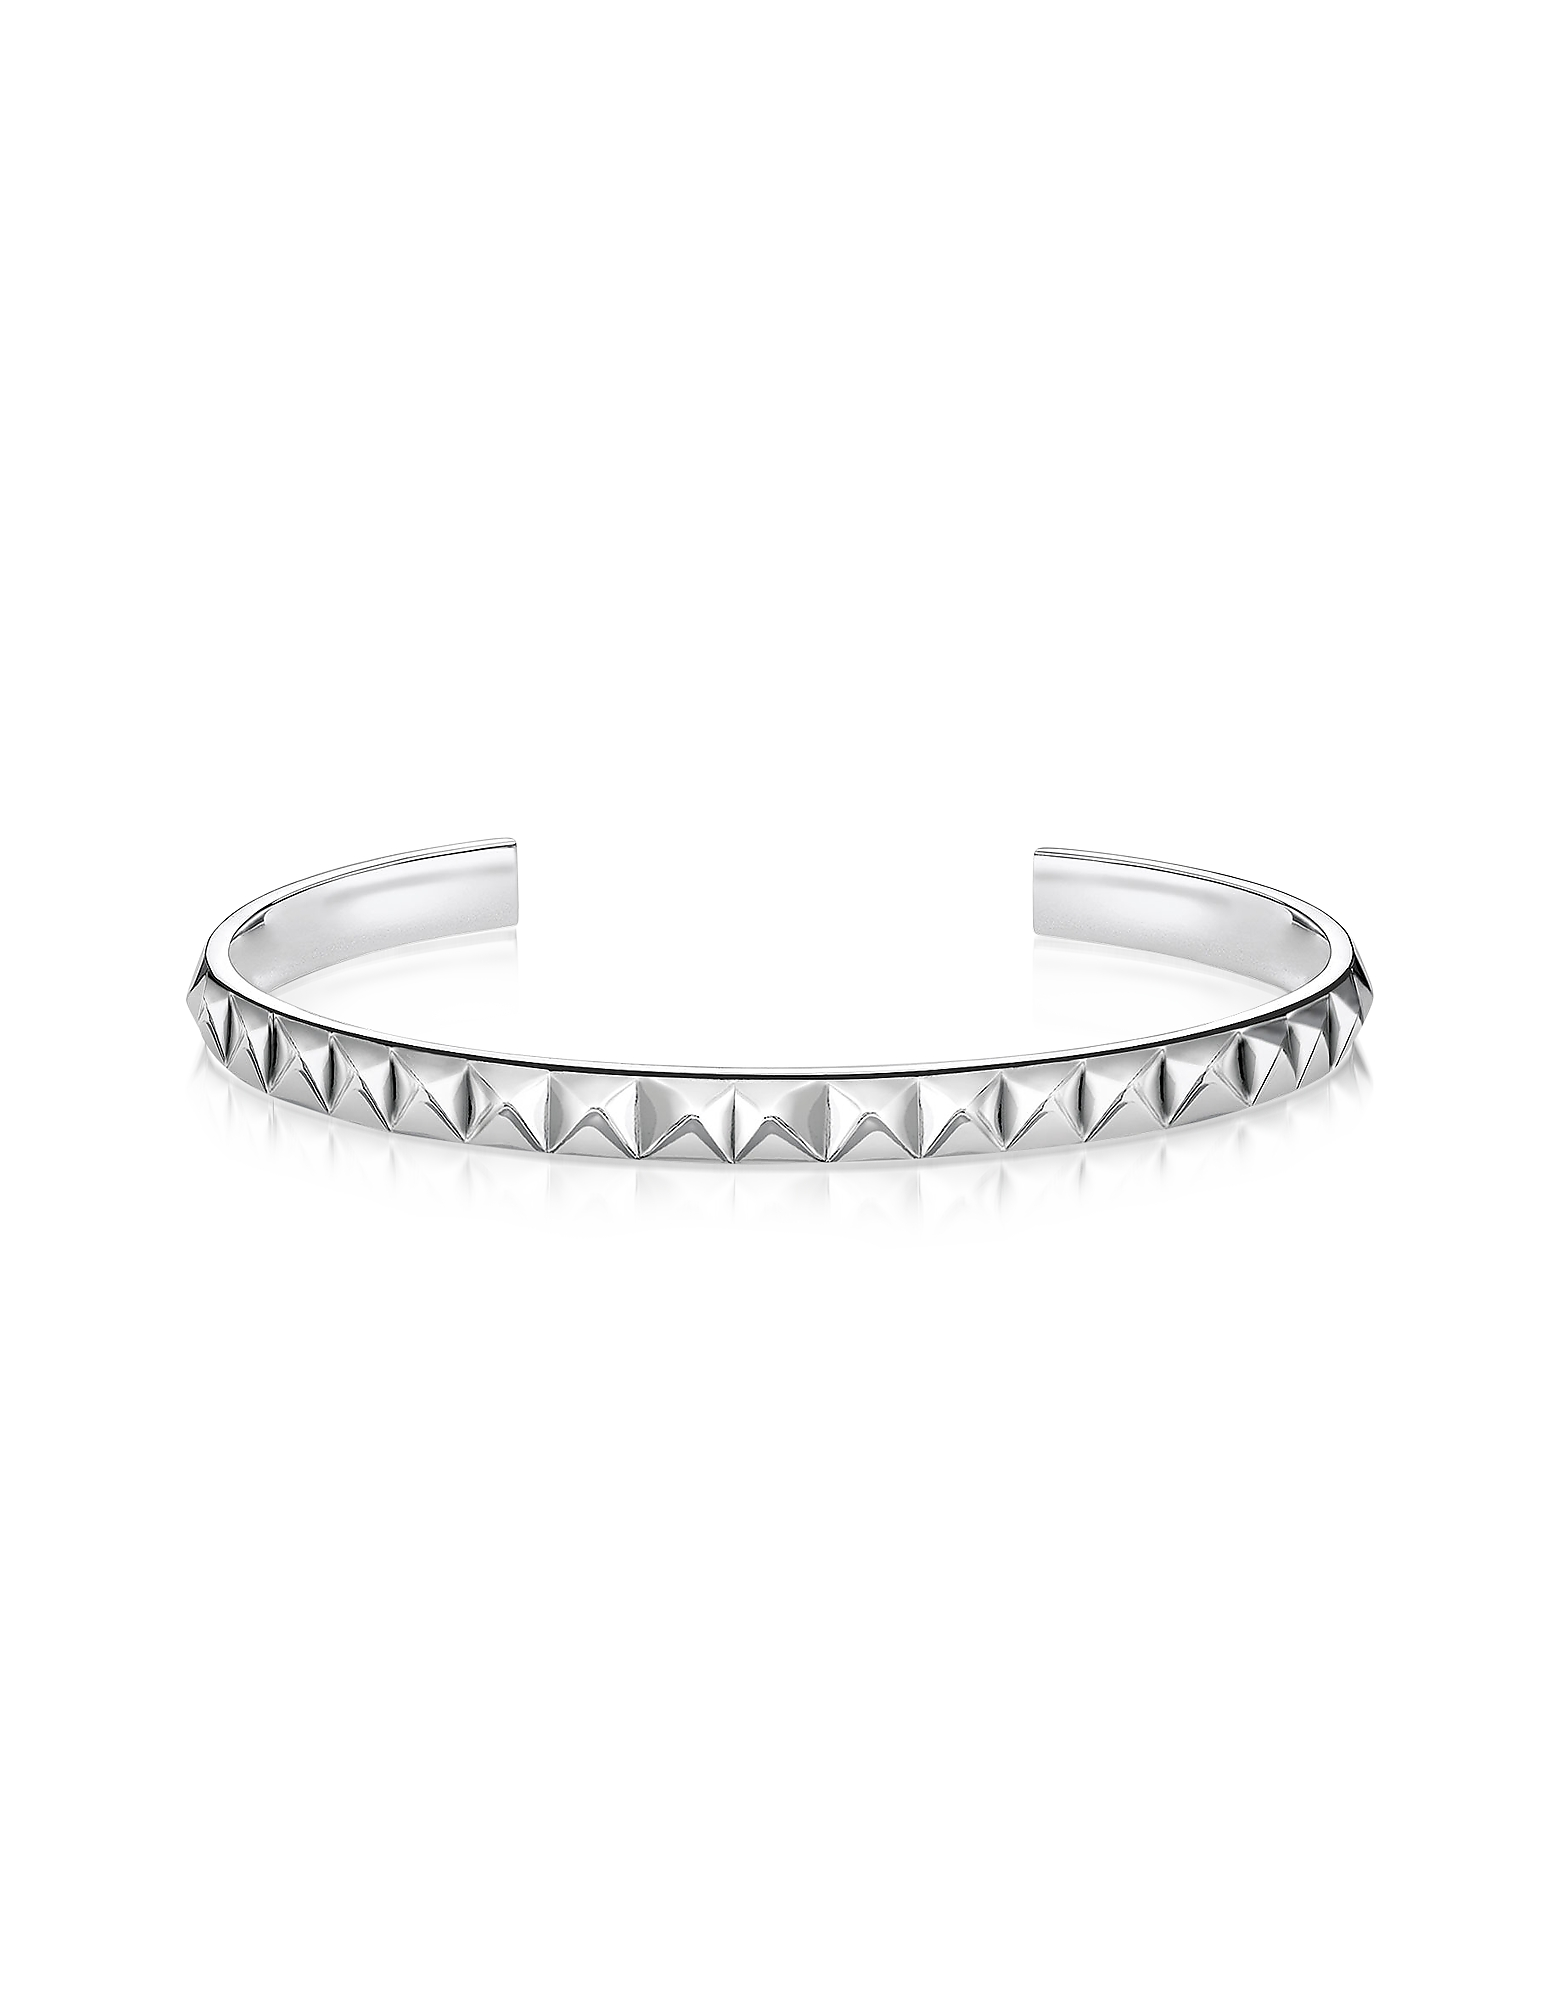 Thomas Sabo Bracelets, Blackened Sterling Silver Pyramid Studs Bangle